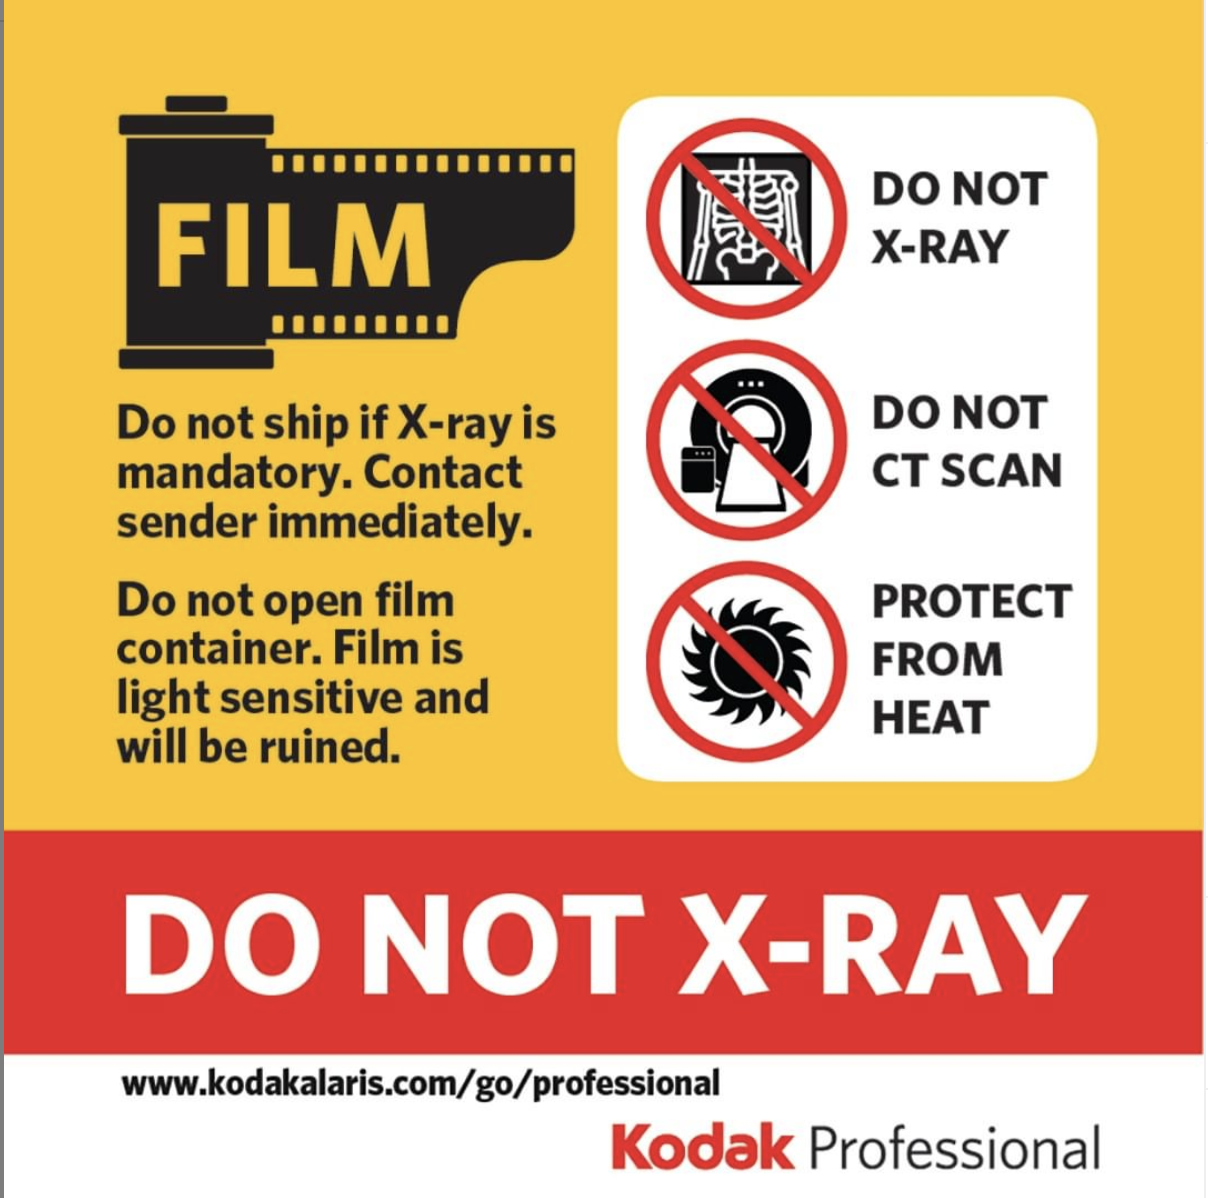 New film warning sticker (Pic: Kodak Alaris/Instagram)